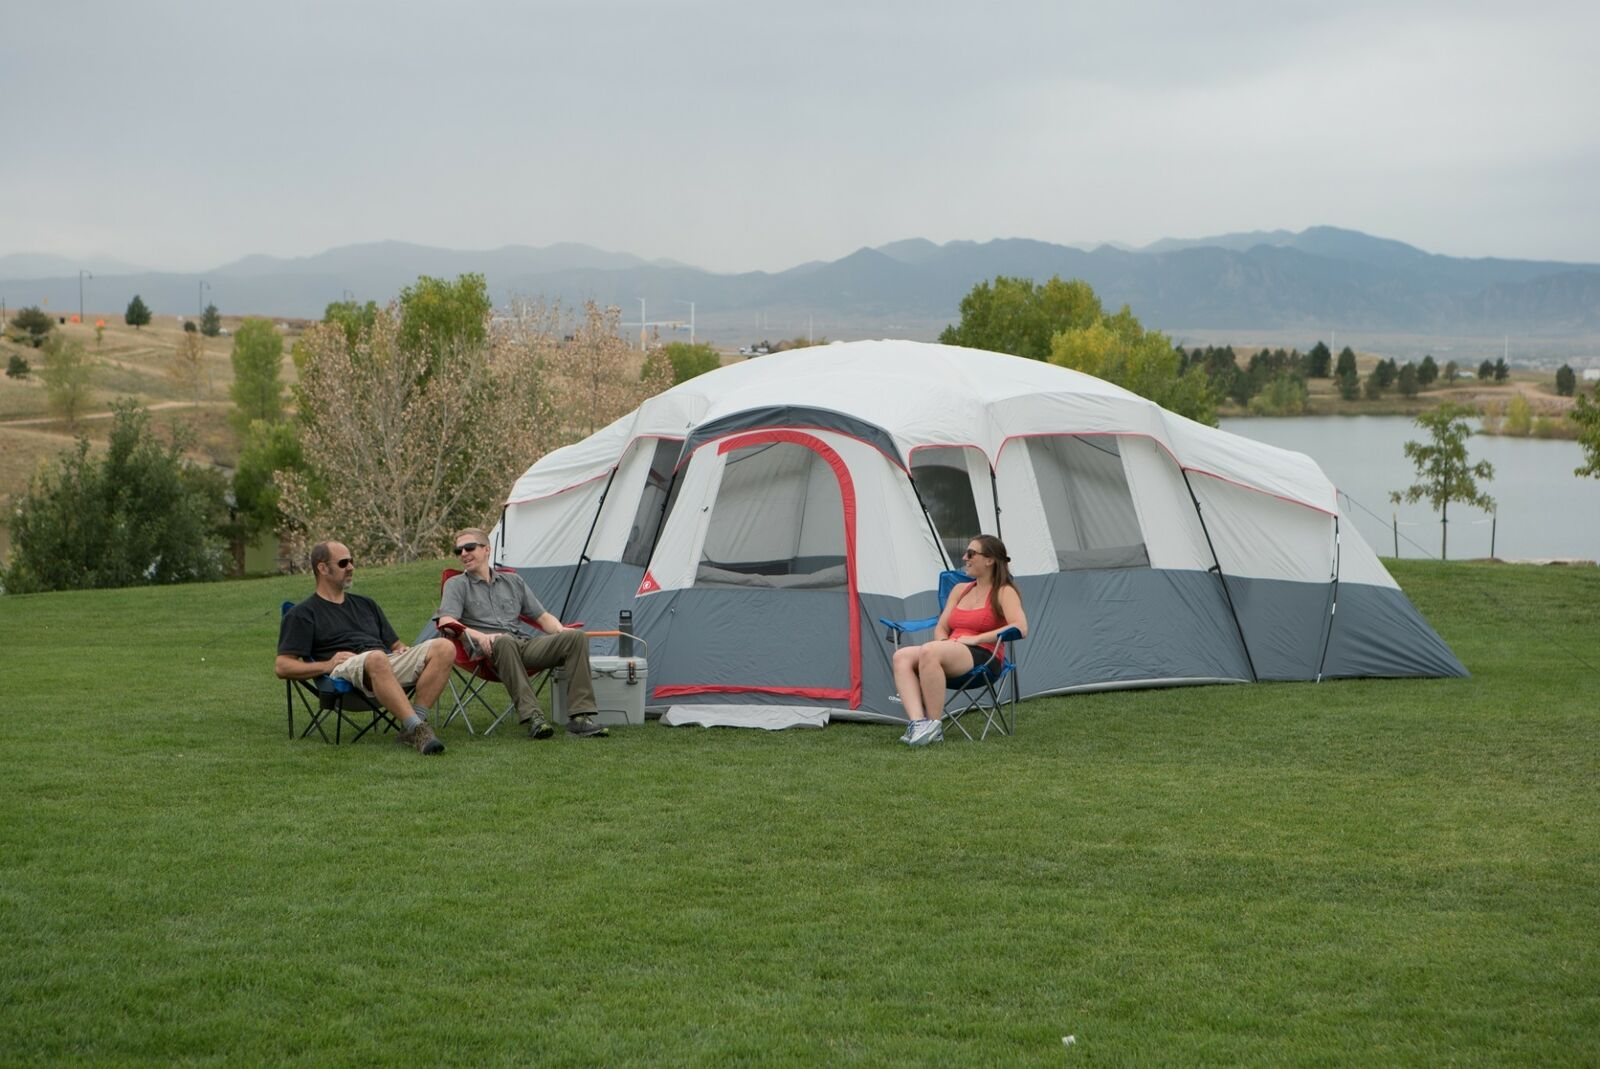 Cabin Tent 4-Room Ozark Trail 20-Person With 4 Separate Entrances Fits 6 Airbeds